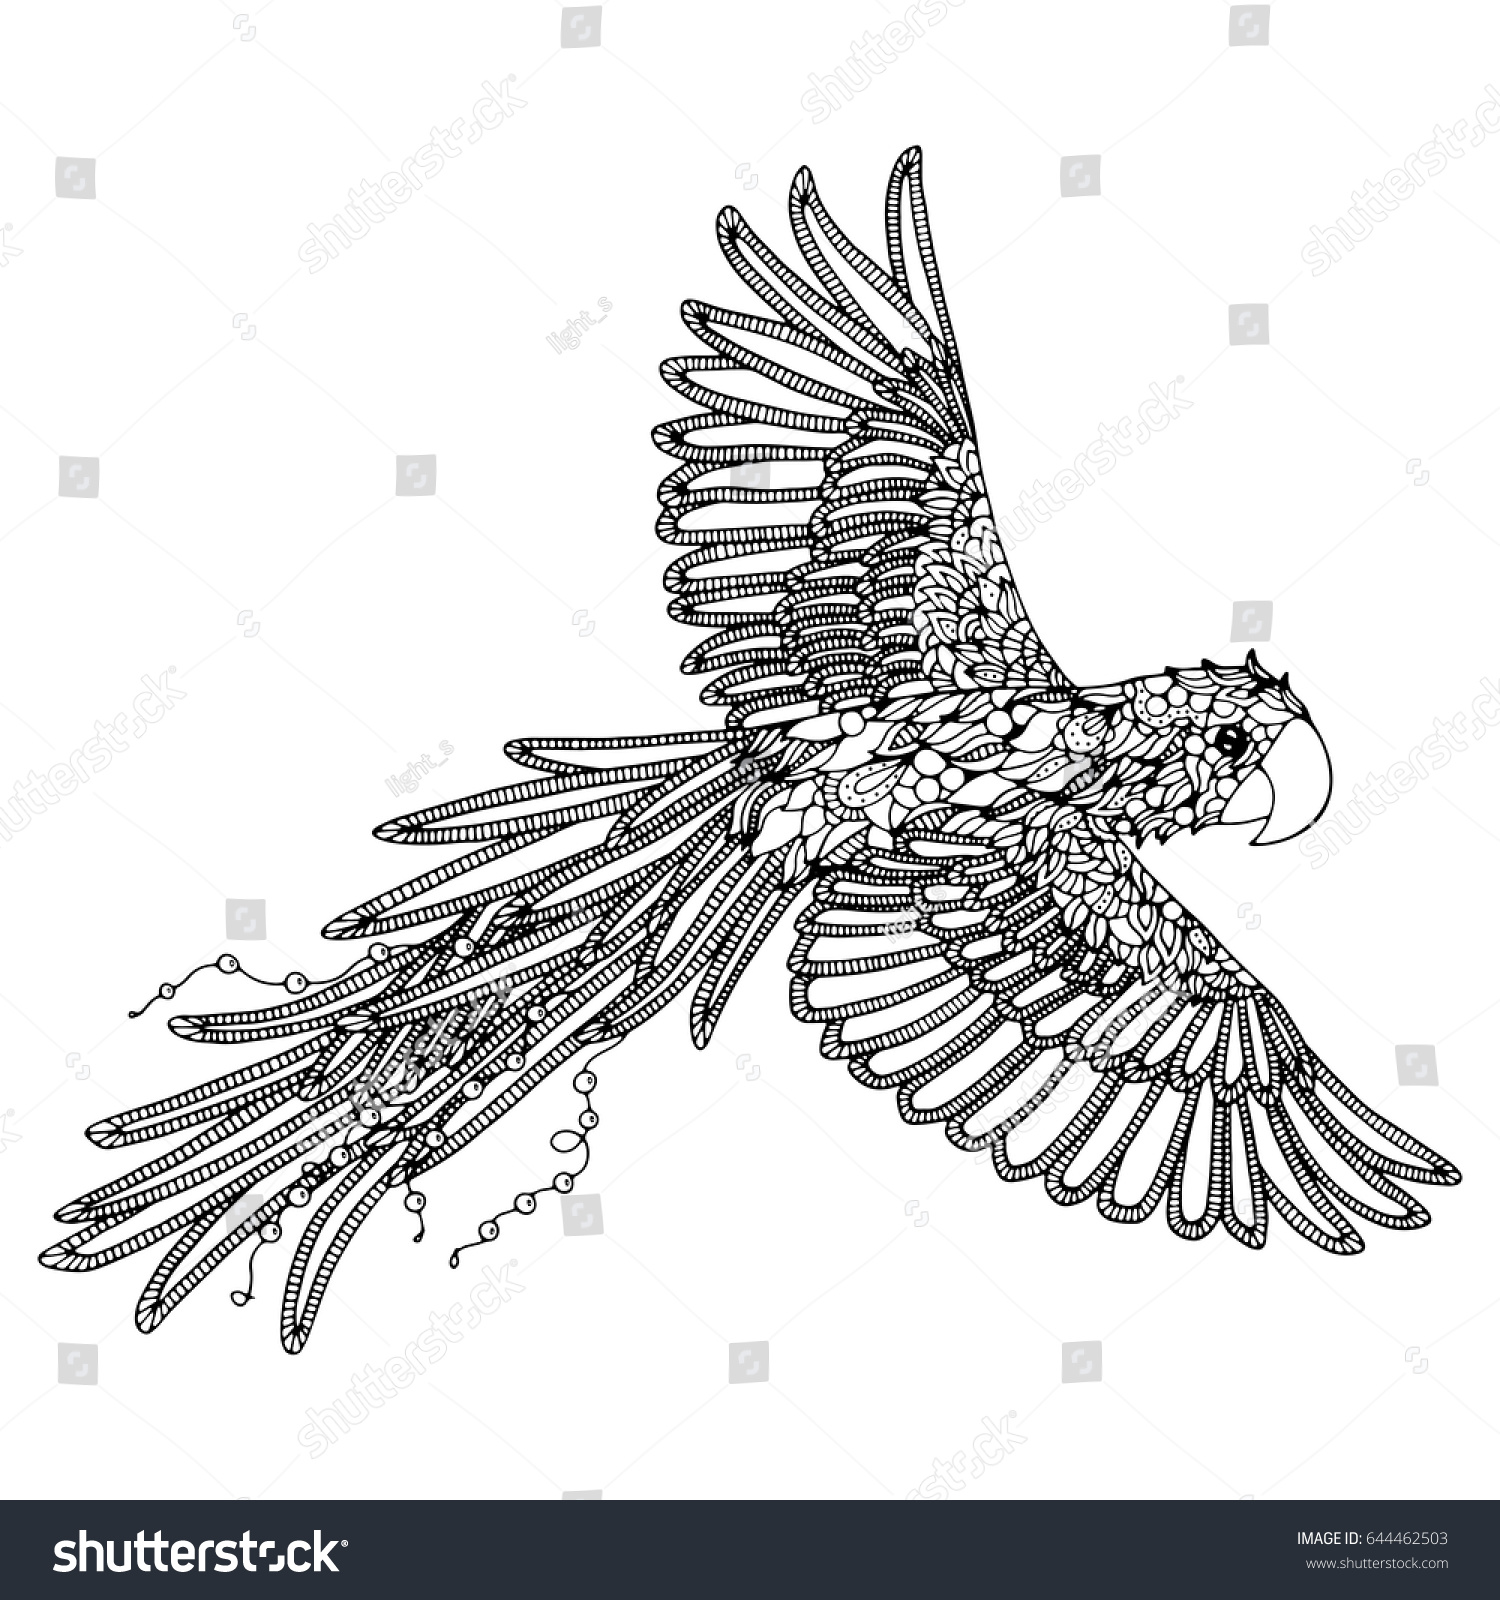 Parrot Coloring Page Scarlet Macaw Stock Vector 644462503 - Shutterstock